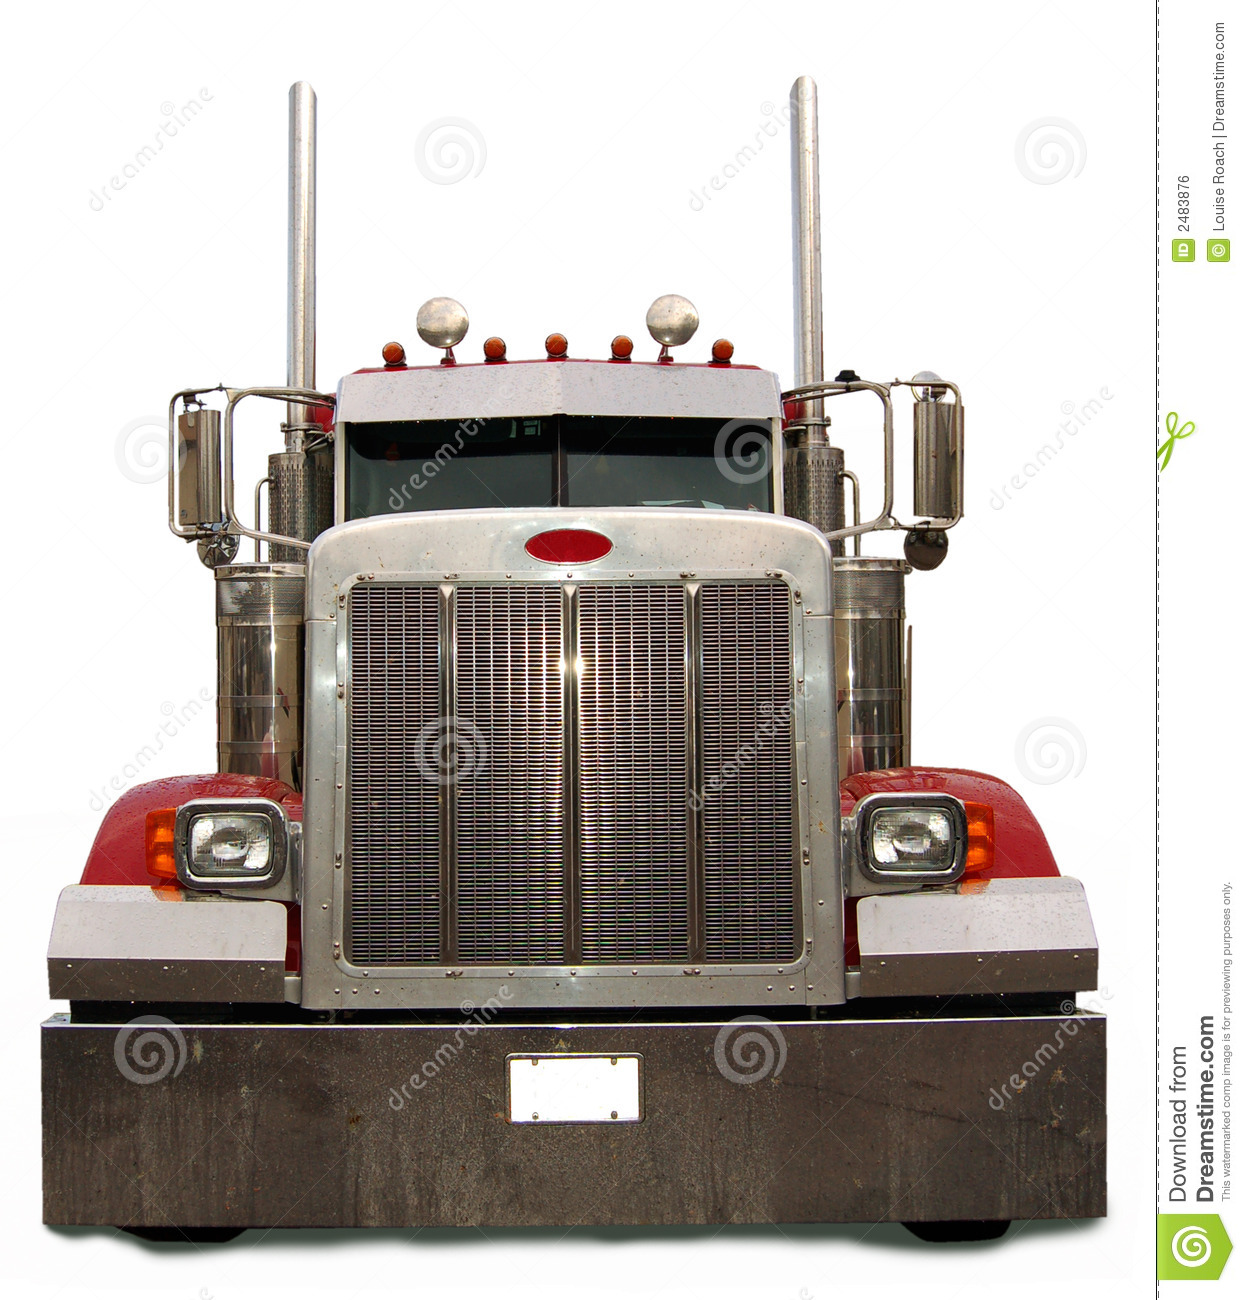 Semi Truck Front View Clipart.